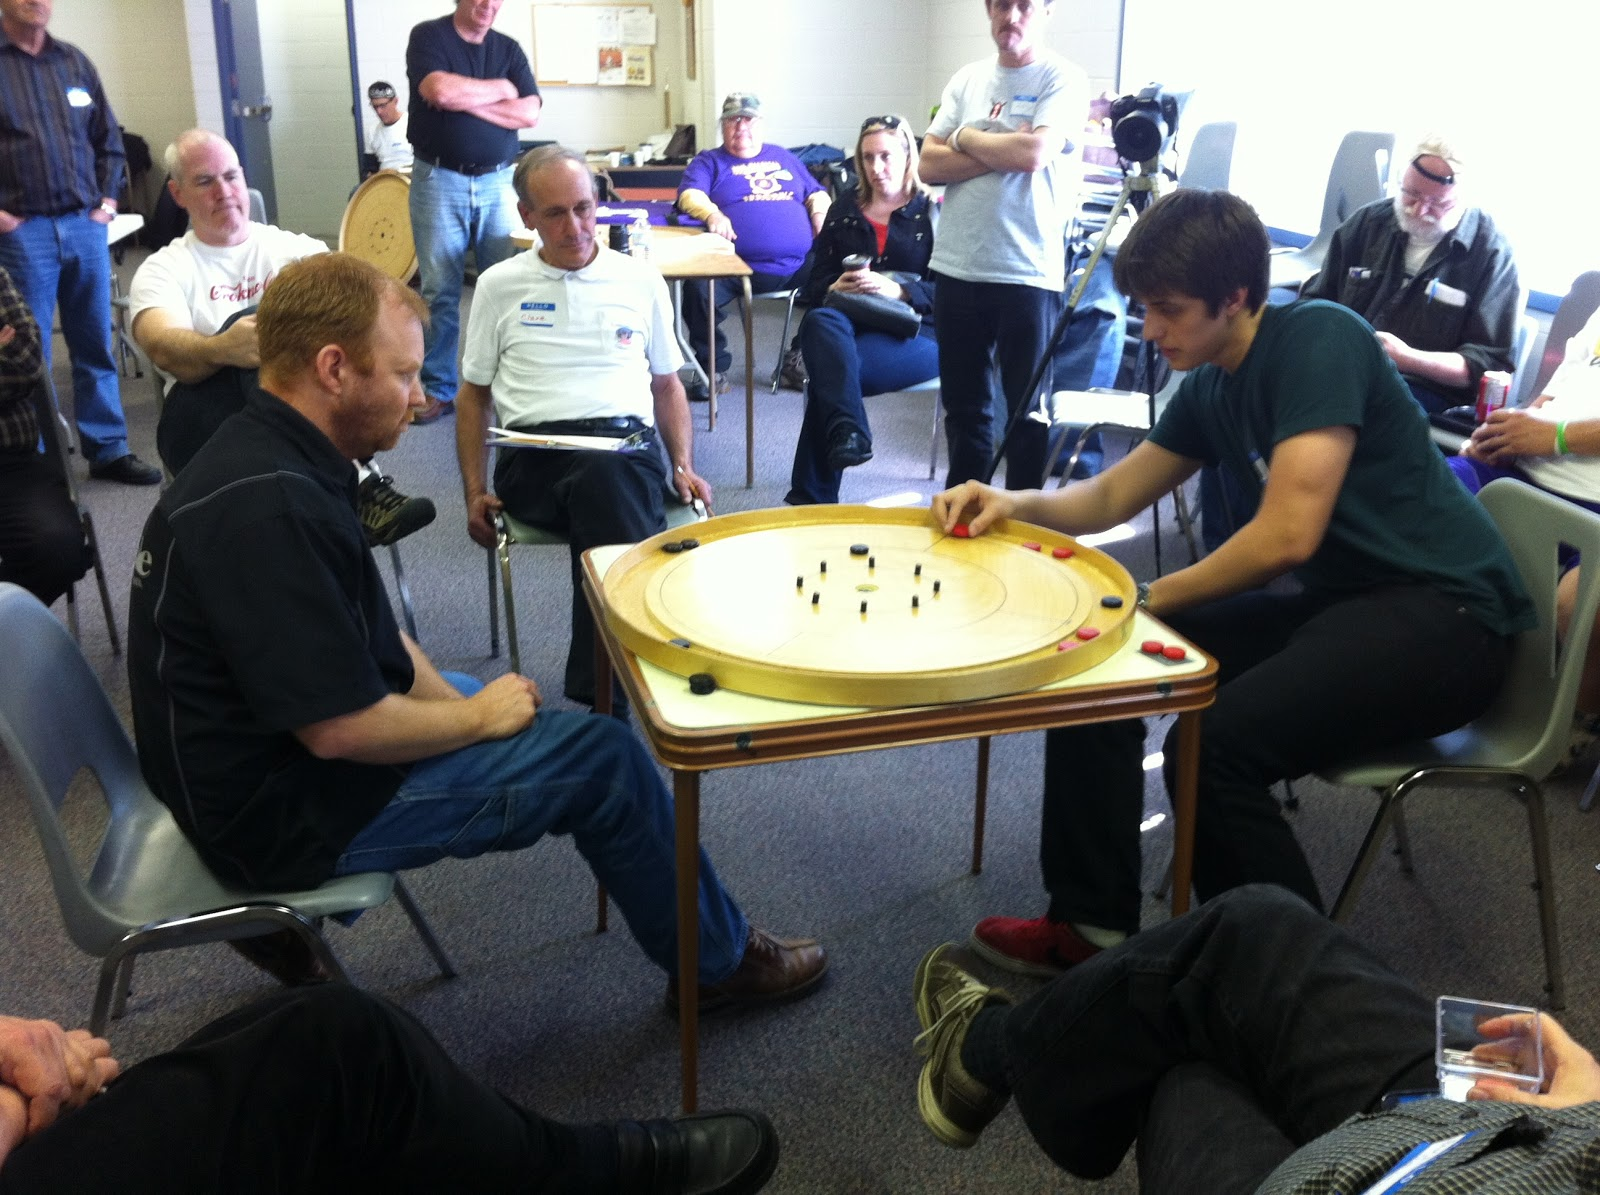 Justin Slater (right) eyes a takeout in the 2013 St. Jacobs Crokinole Tournament final against Ray Beierling (left) as the rest of the field looks on.